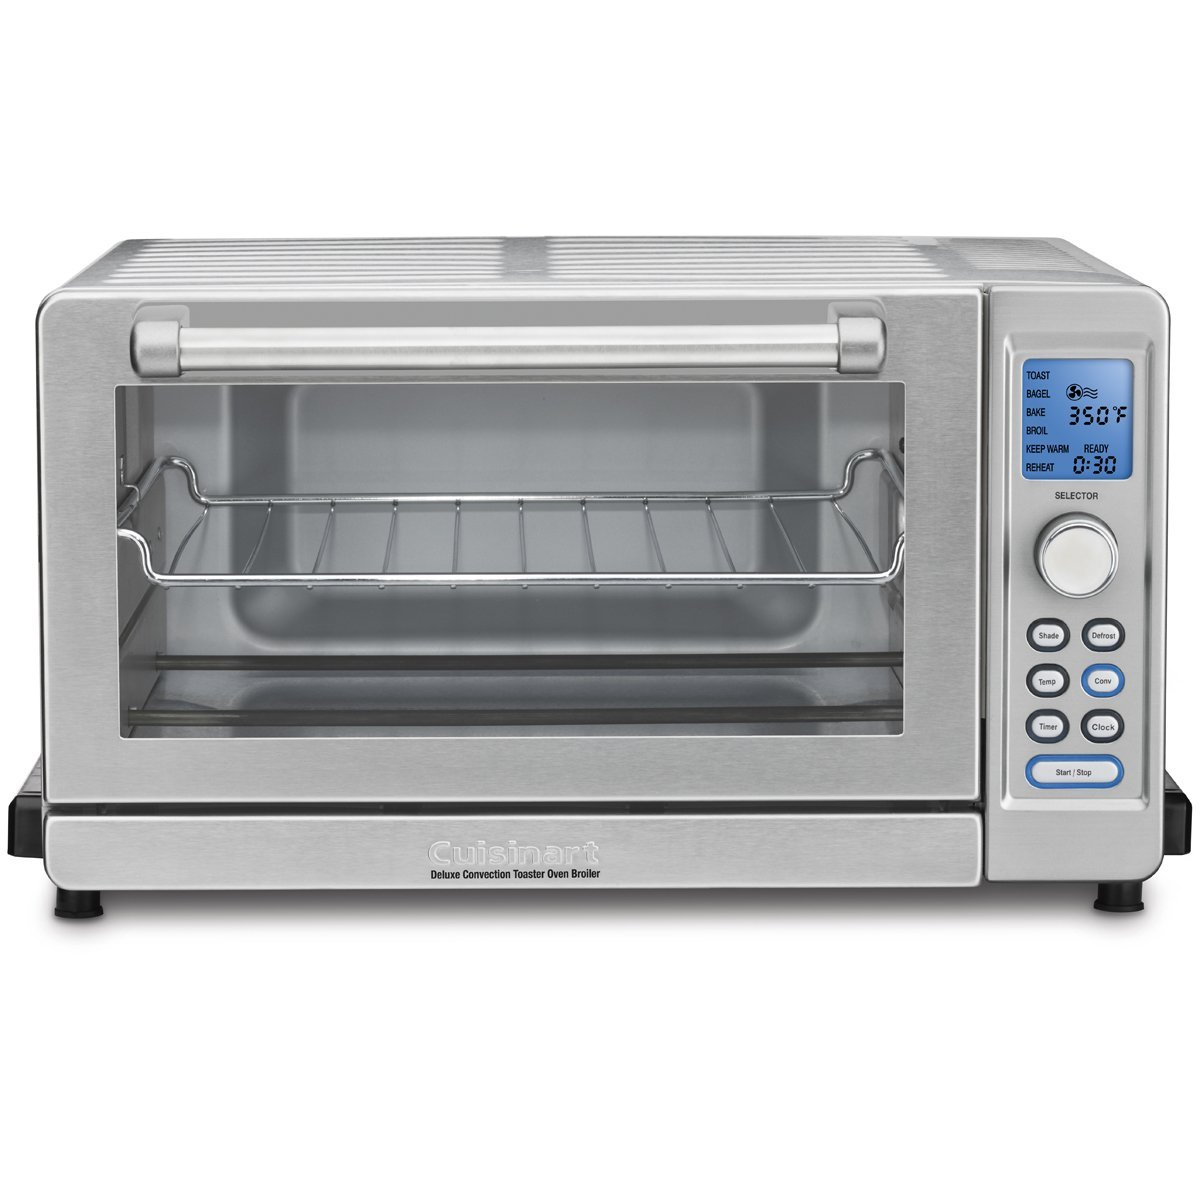 Cuisinart 174 Deluxe Convection Toaster Oven Broiler